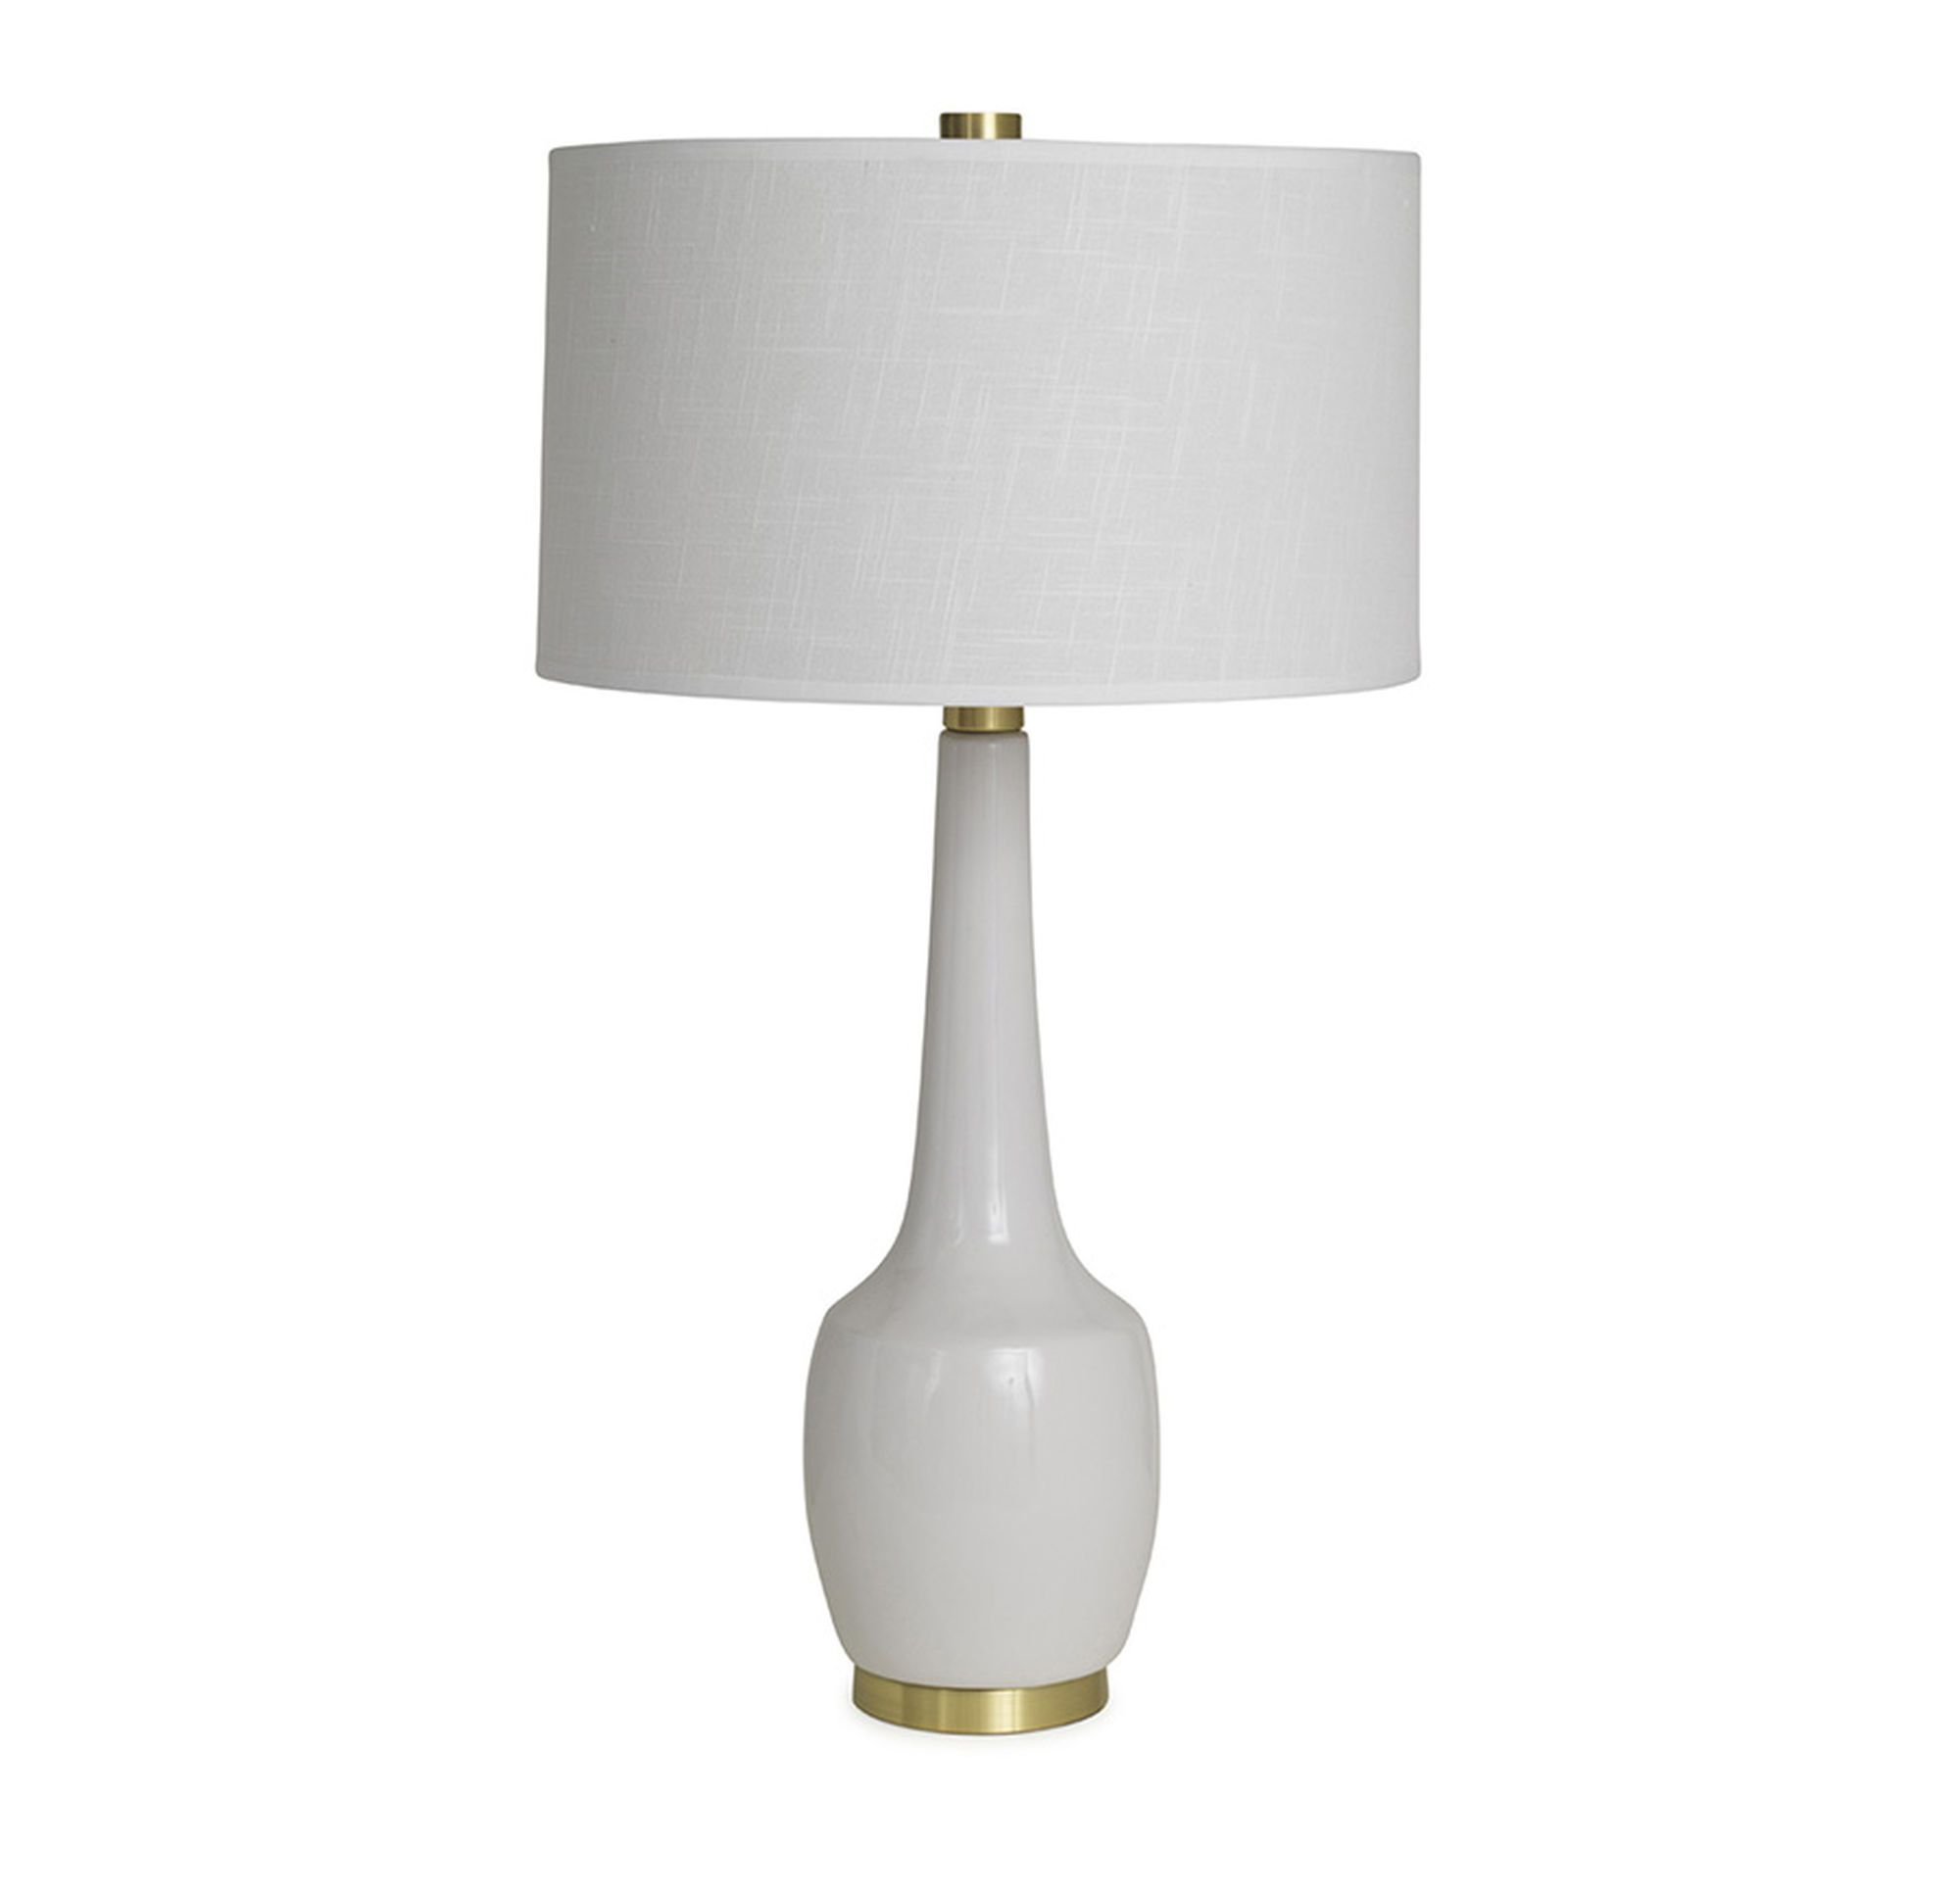 Nola lily white table lamp hi res this is really pretty too shop our statement making nola lily white table lamp designed to create a warm stylish feel while adding a sculptural accent to your room aloadofball Gallery